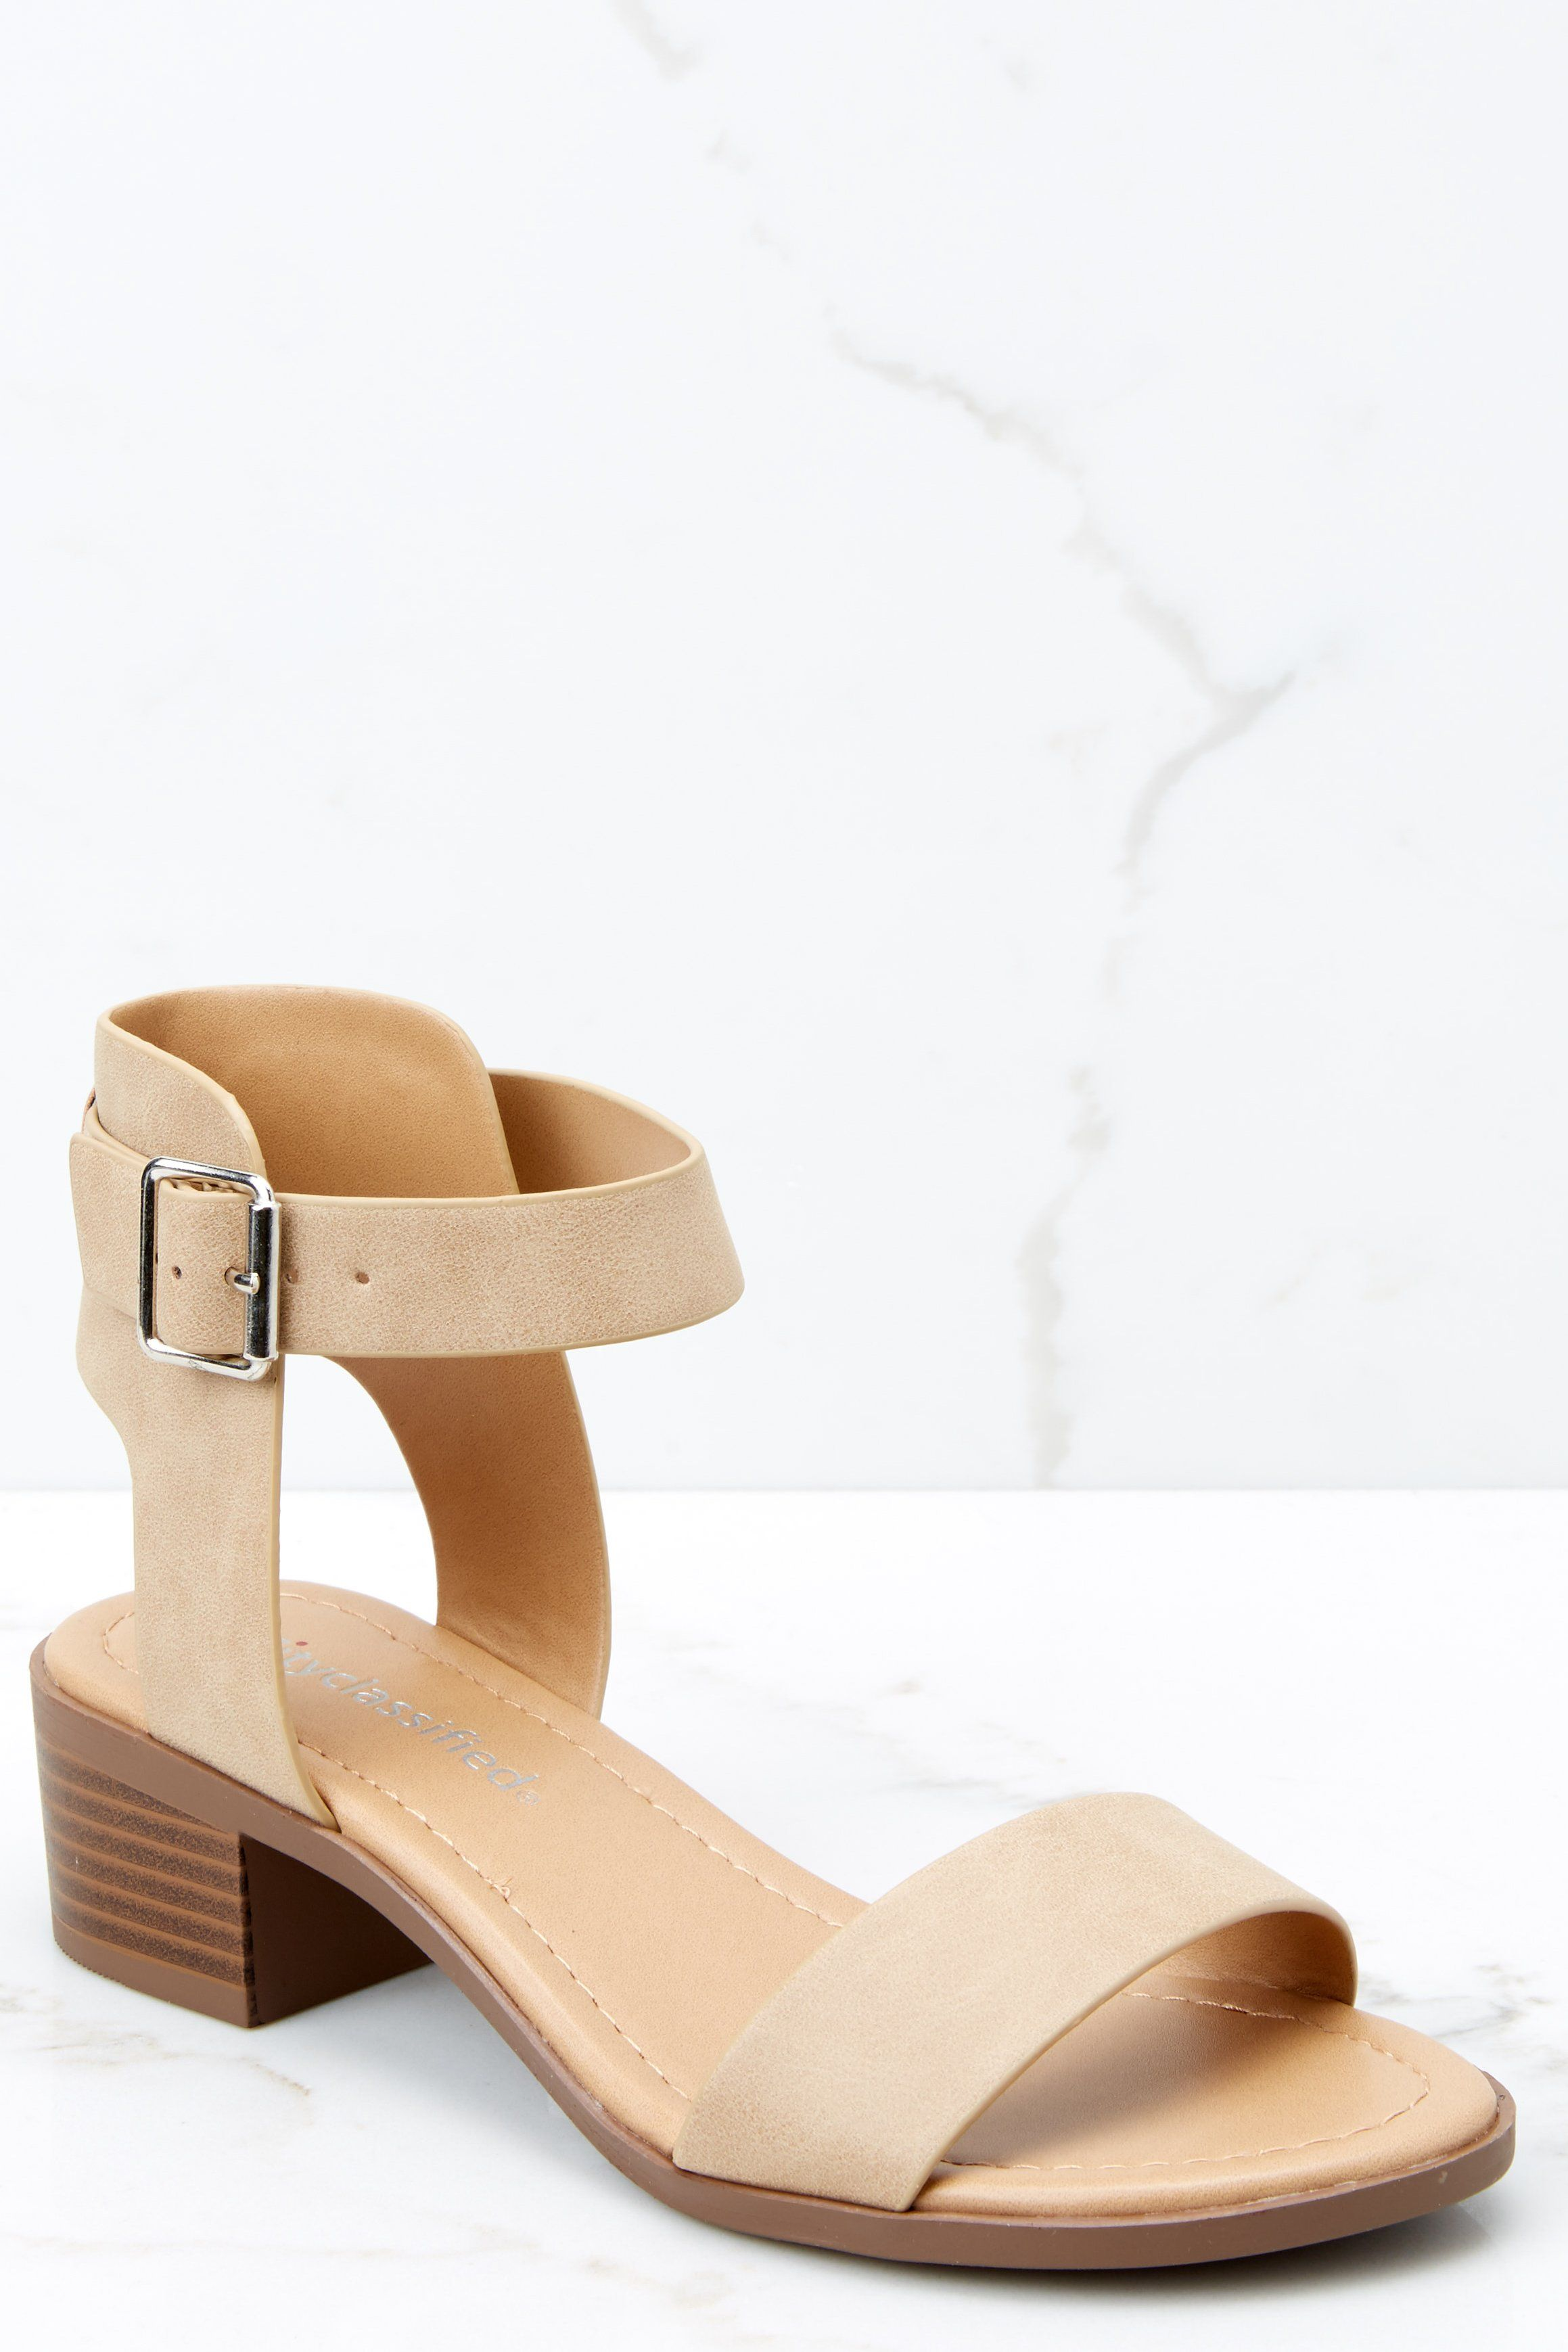 7290d523c29127 Chic Taupe Ankle Strap Heels - Cute Heels - Heels -  28.00 – Red Dress  Boutique